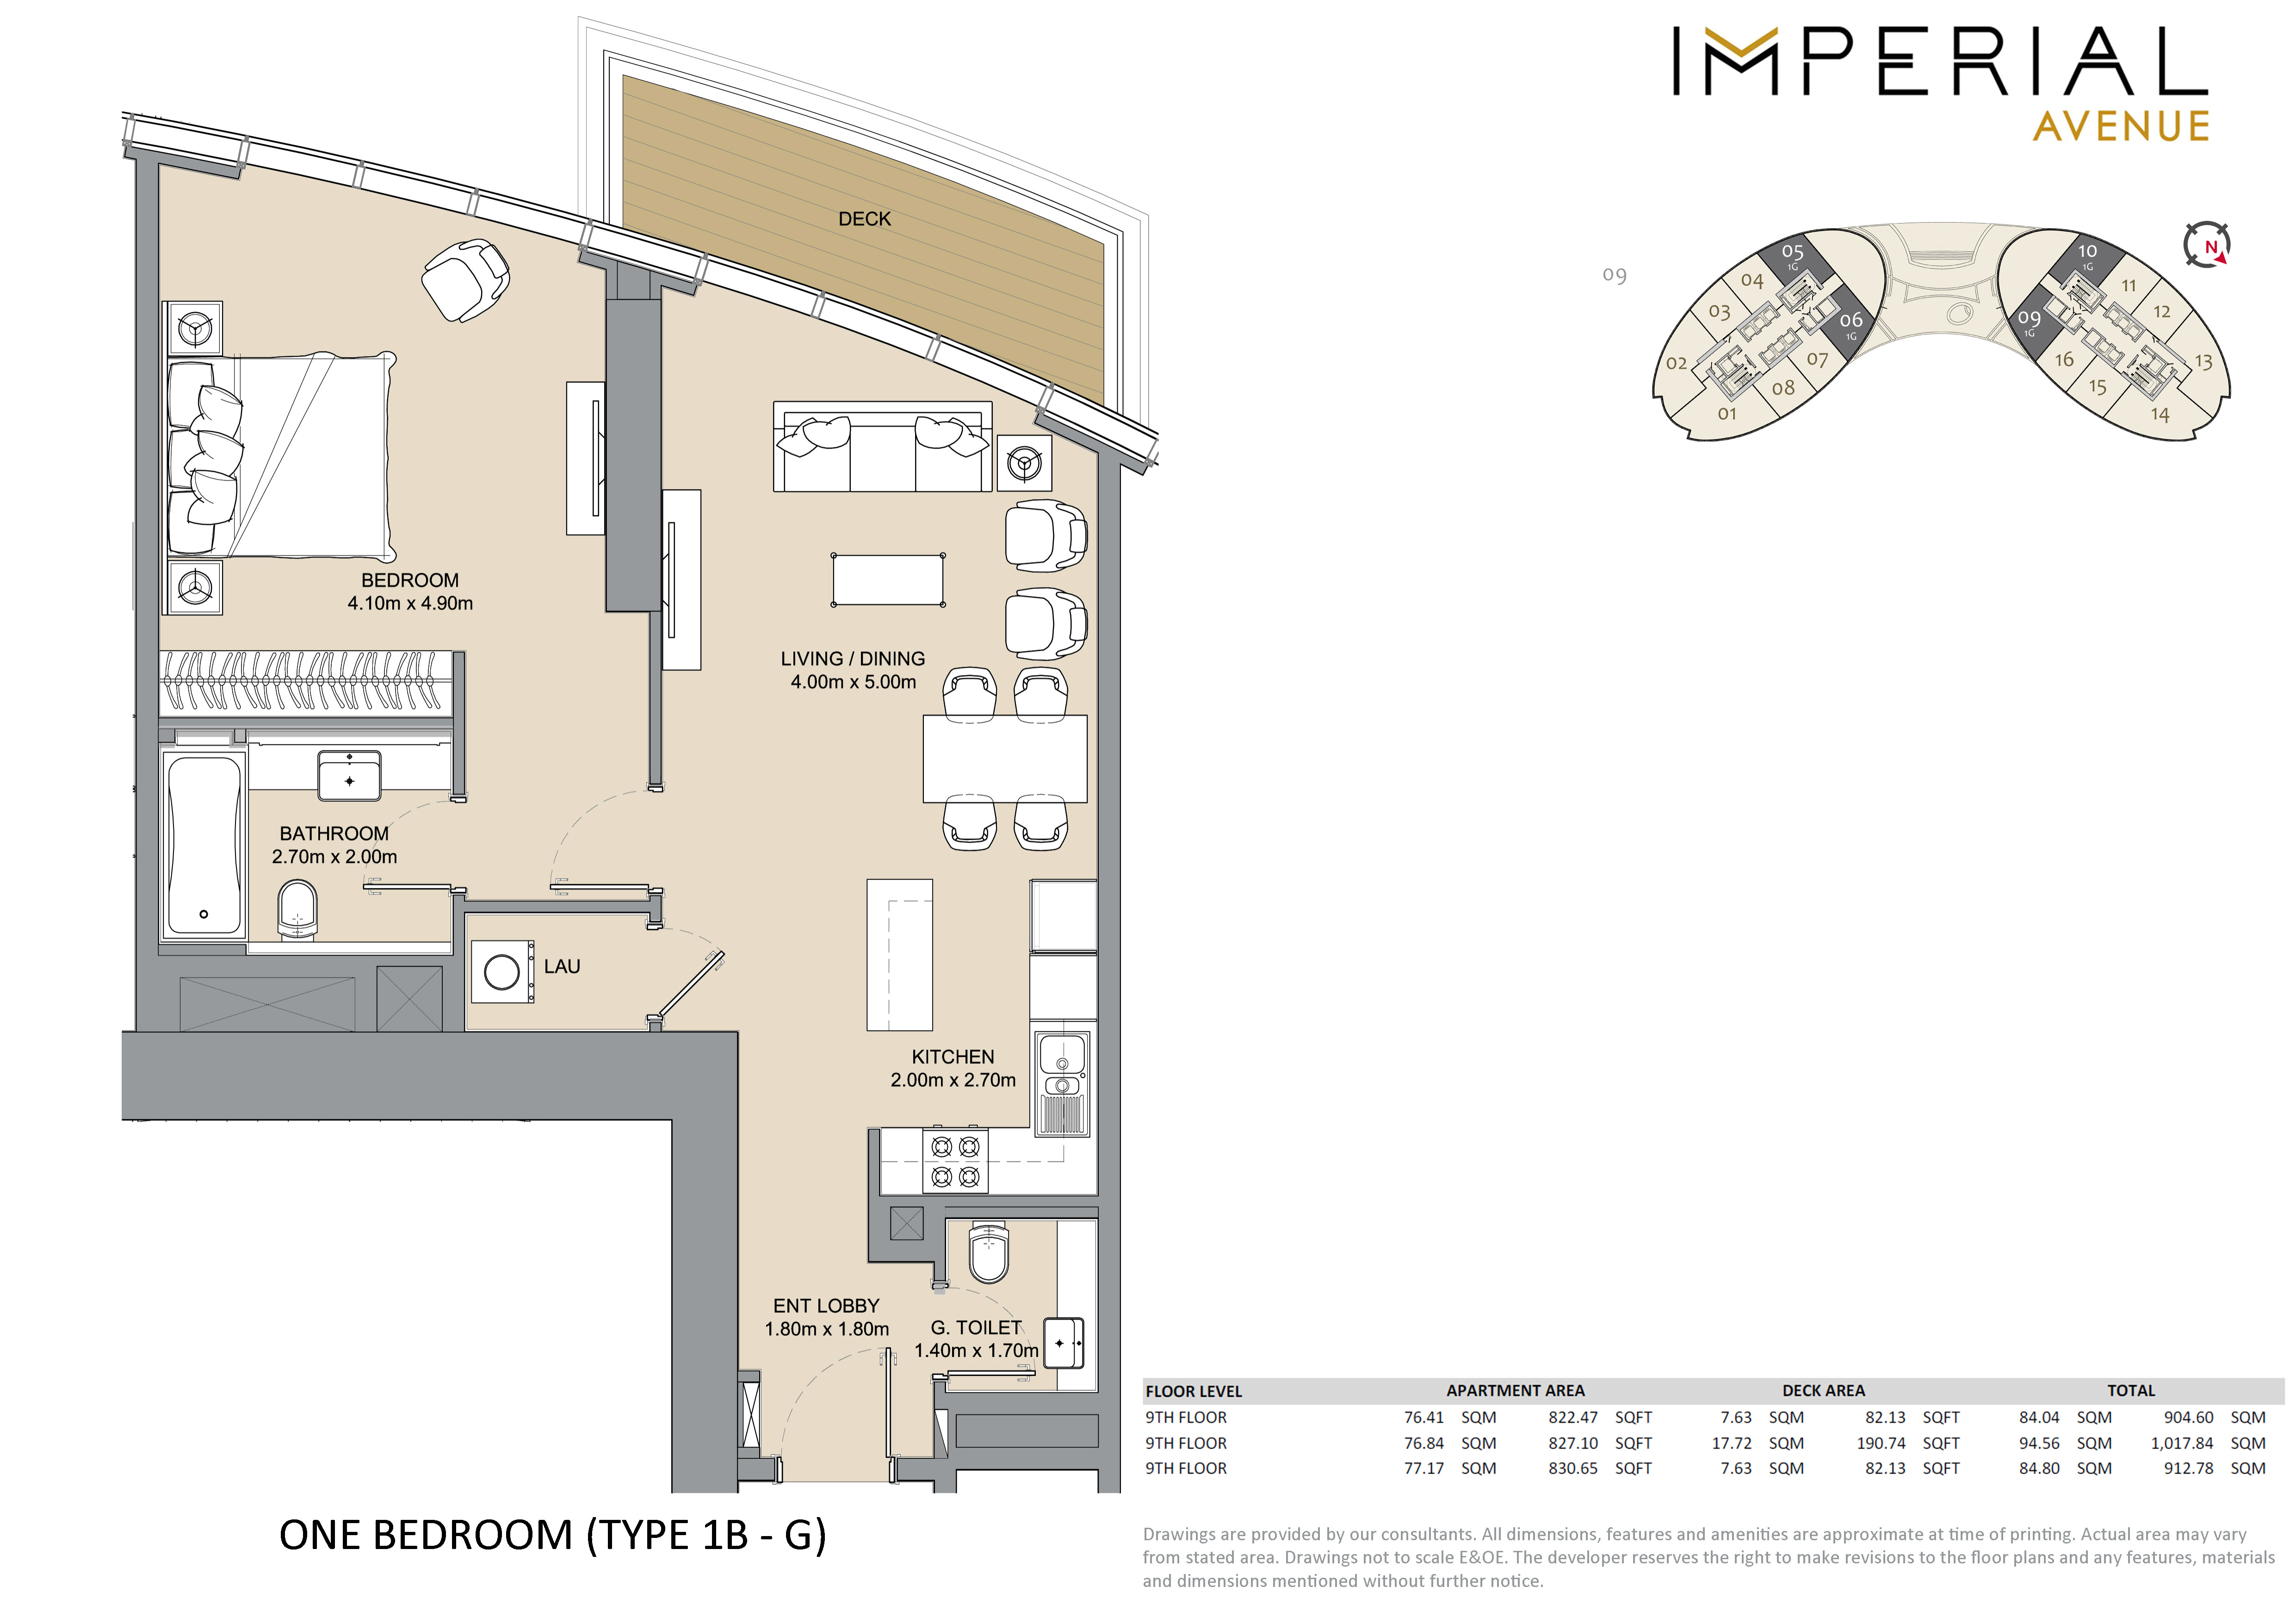 1325735079 First Floor Plan Page 001 1 together with Sky Tower Shams Abu Dhabi Al Reem Island Abu Dhabi further Floorplans as well Casa Floor Plans besides Babson College Dorms. on 1 br floor plans